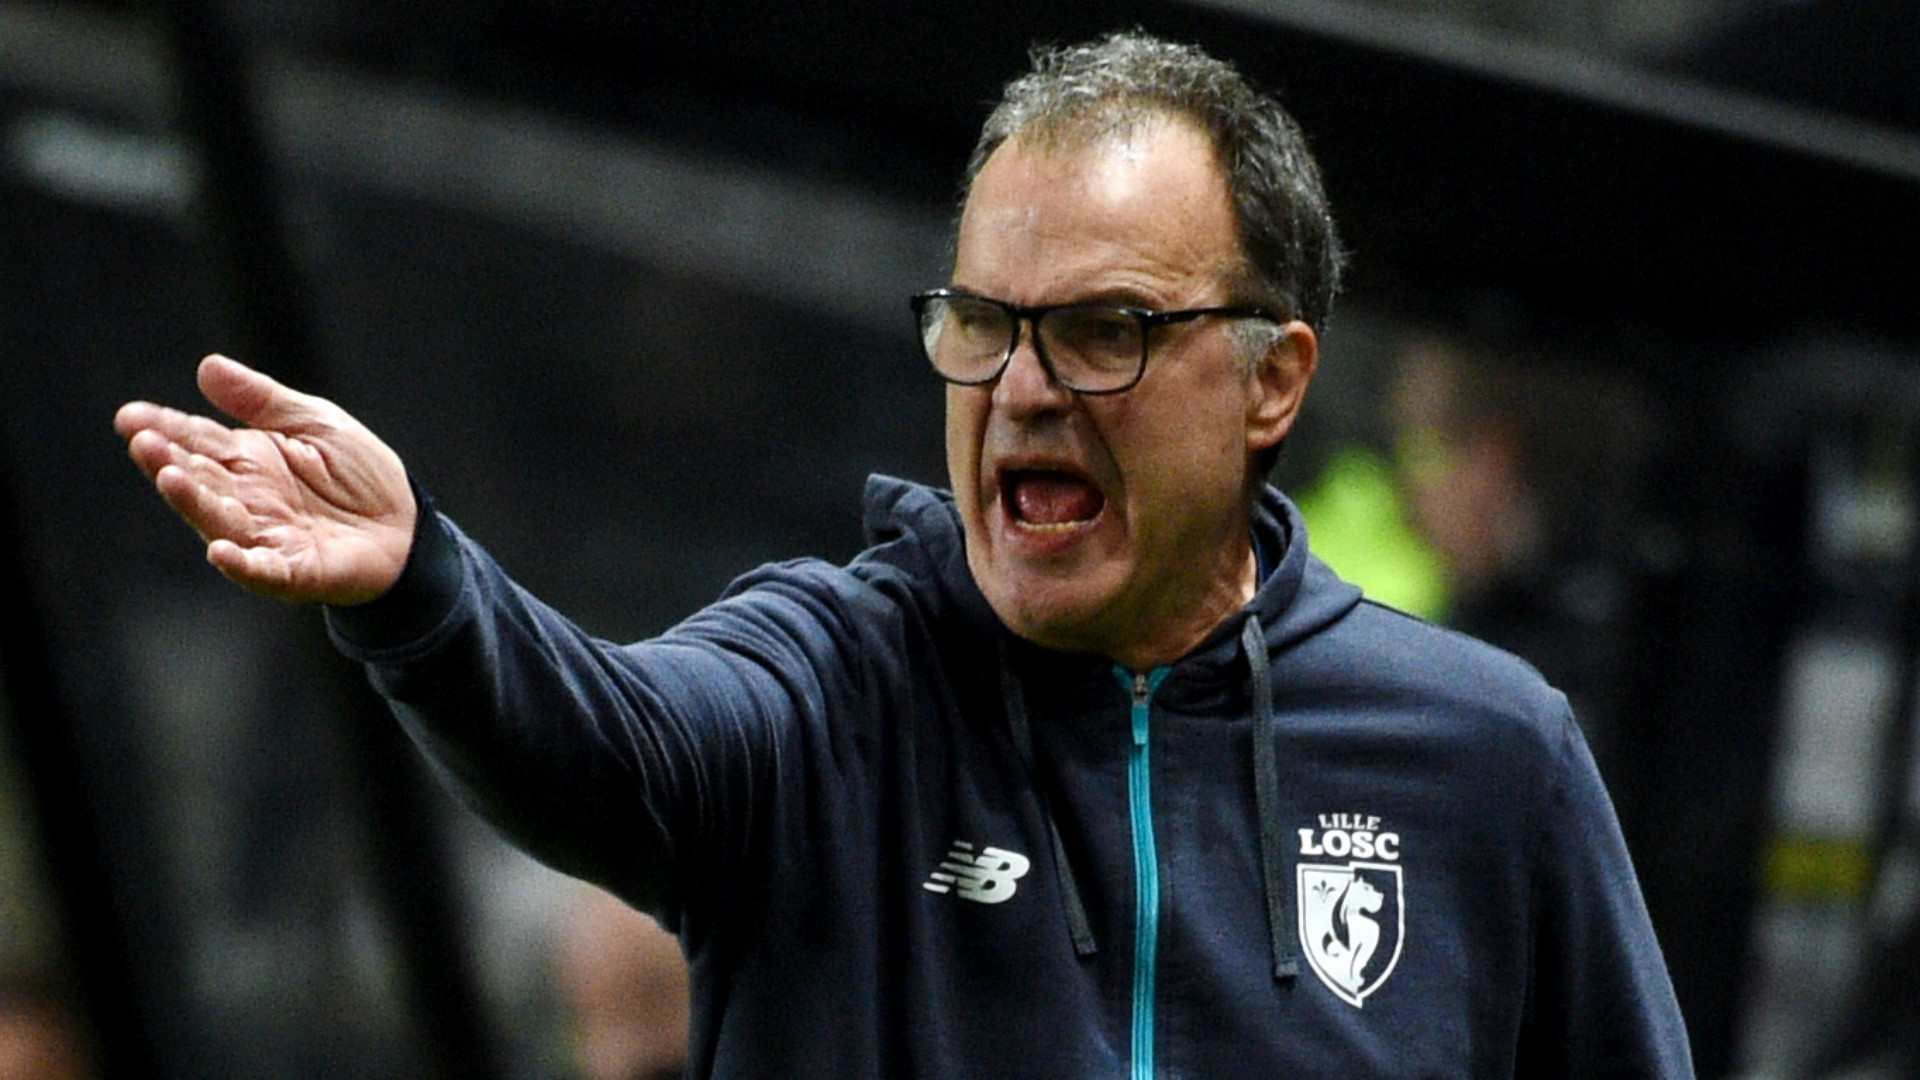 Leeds lining up move to hire Bielsa